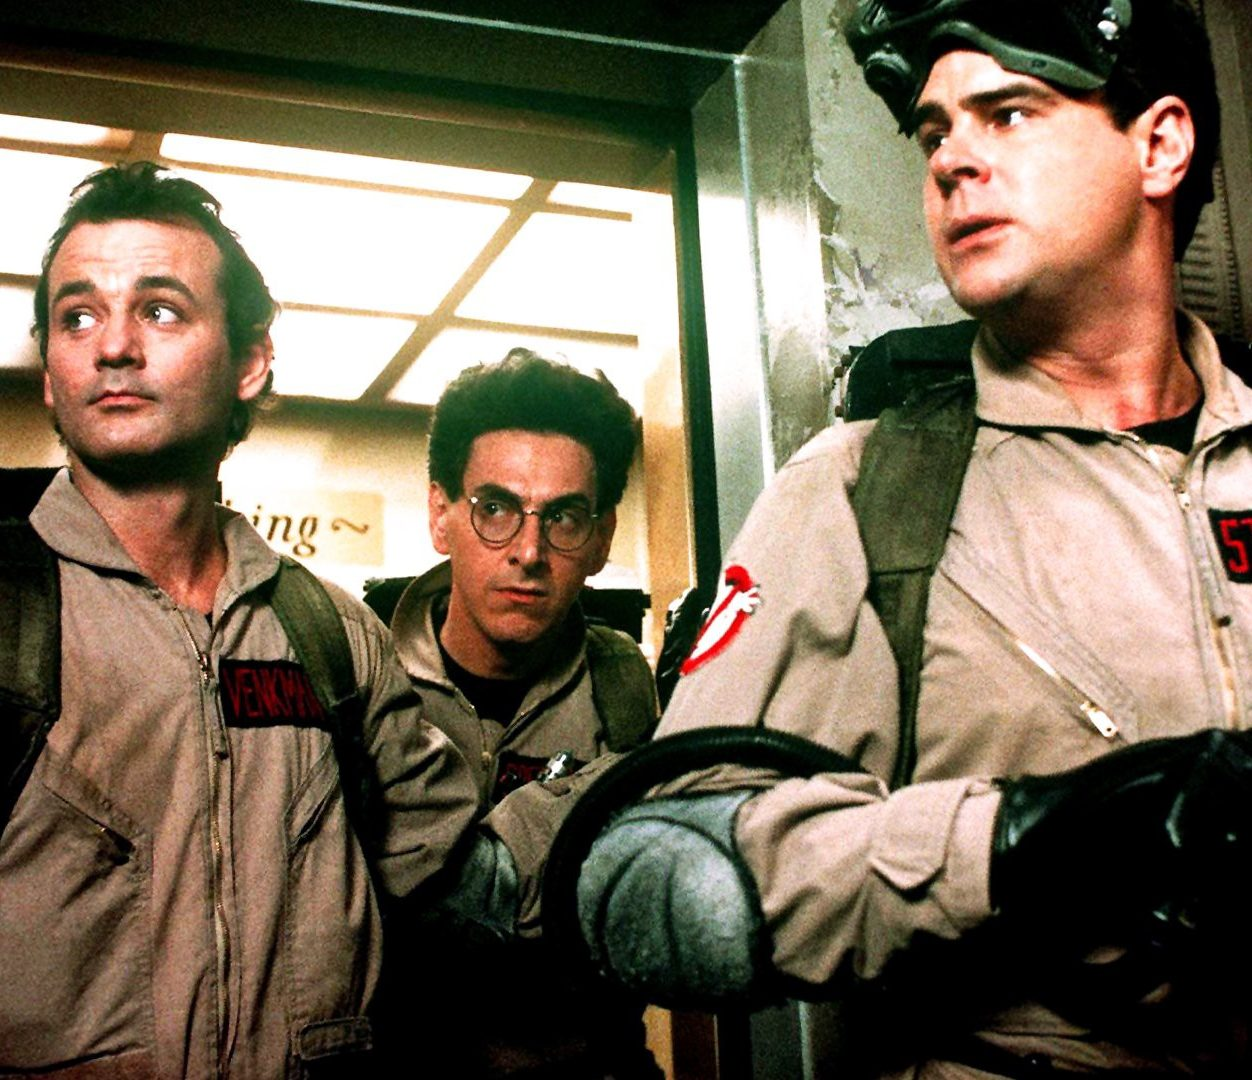 1 27 e1608555543836 20 Things You May Have Missed In Ghostbusters